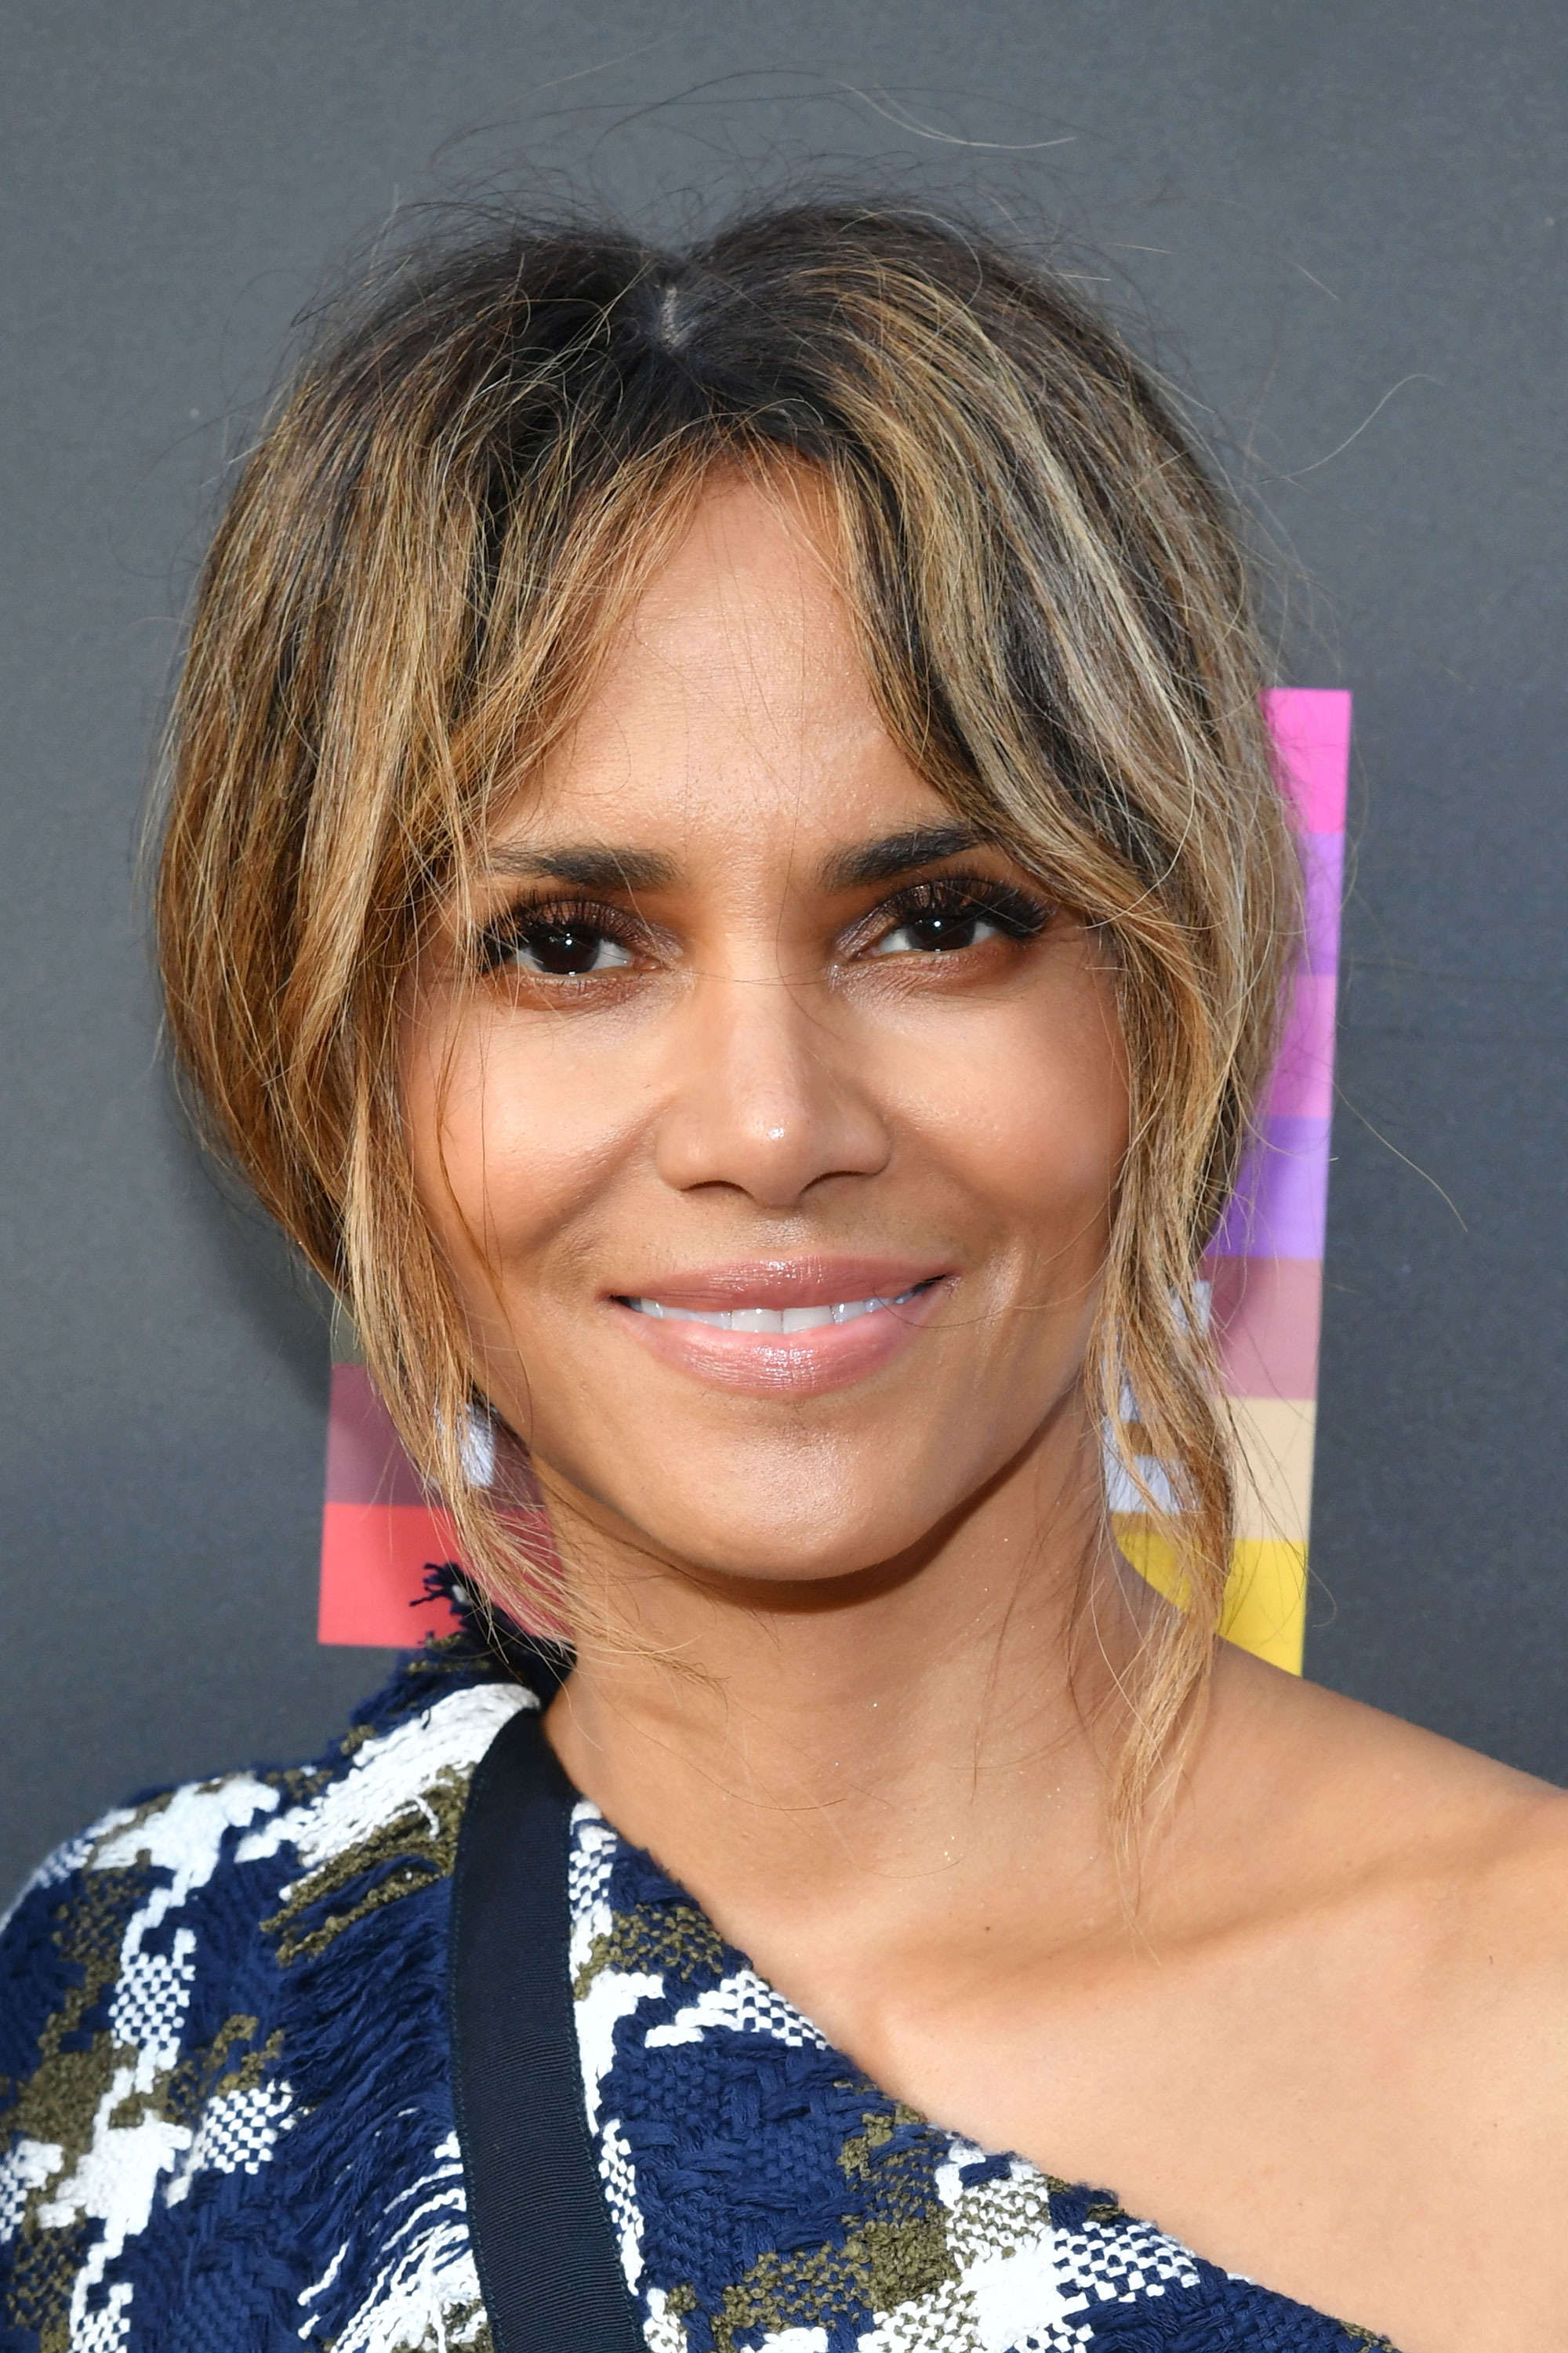 Halle Berry's Birthday Post Freed the Nipple